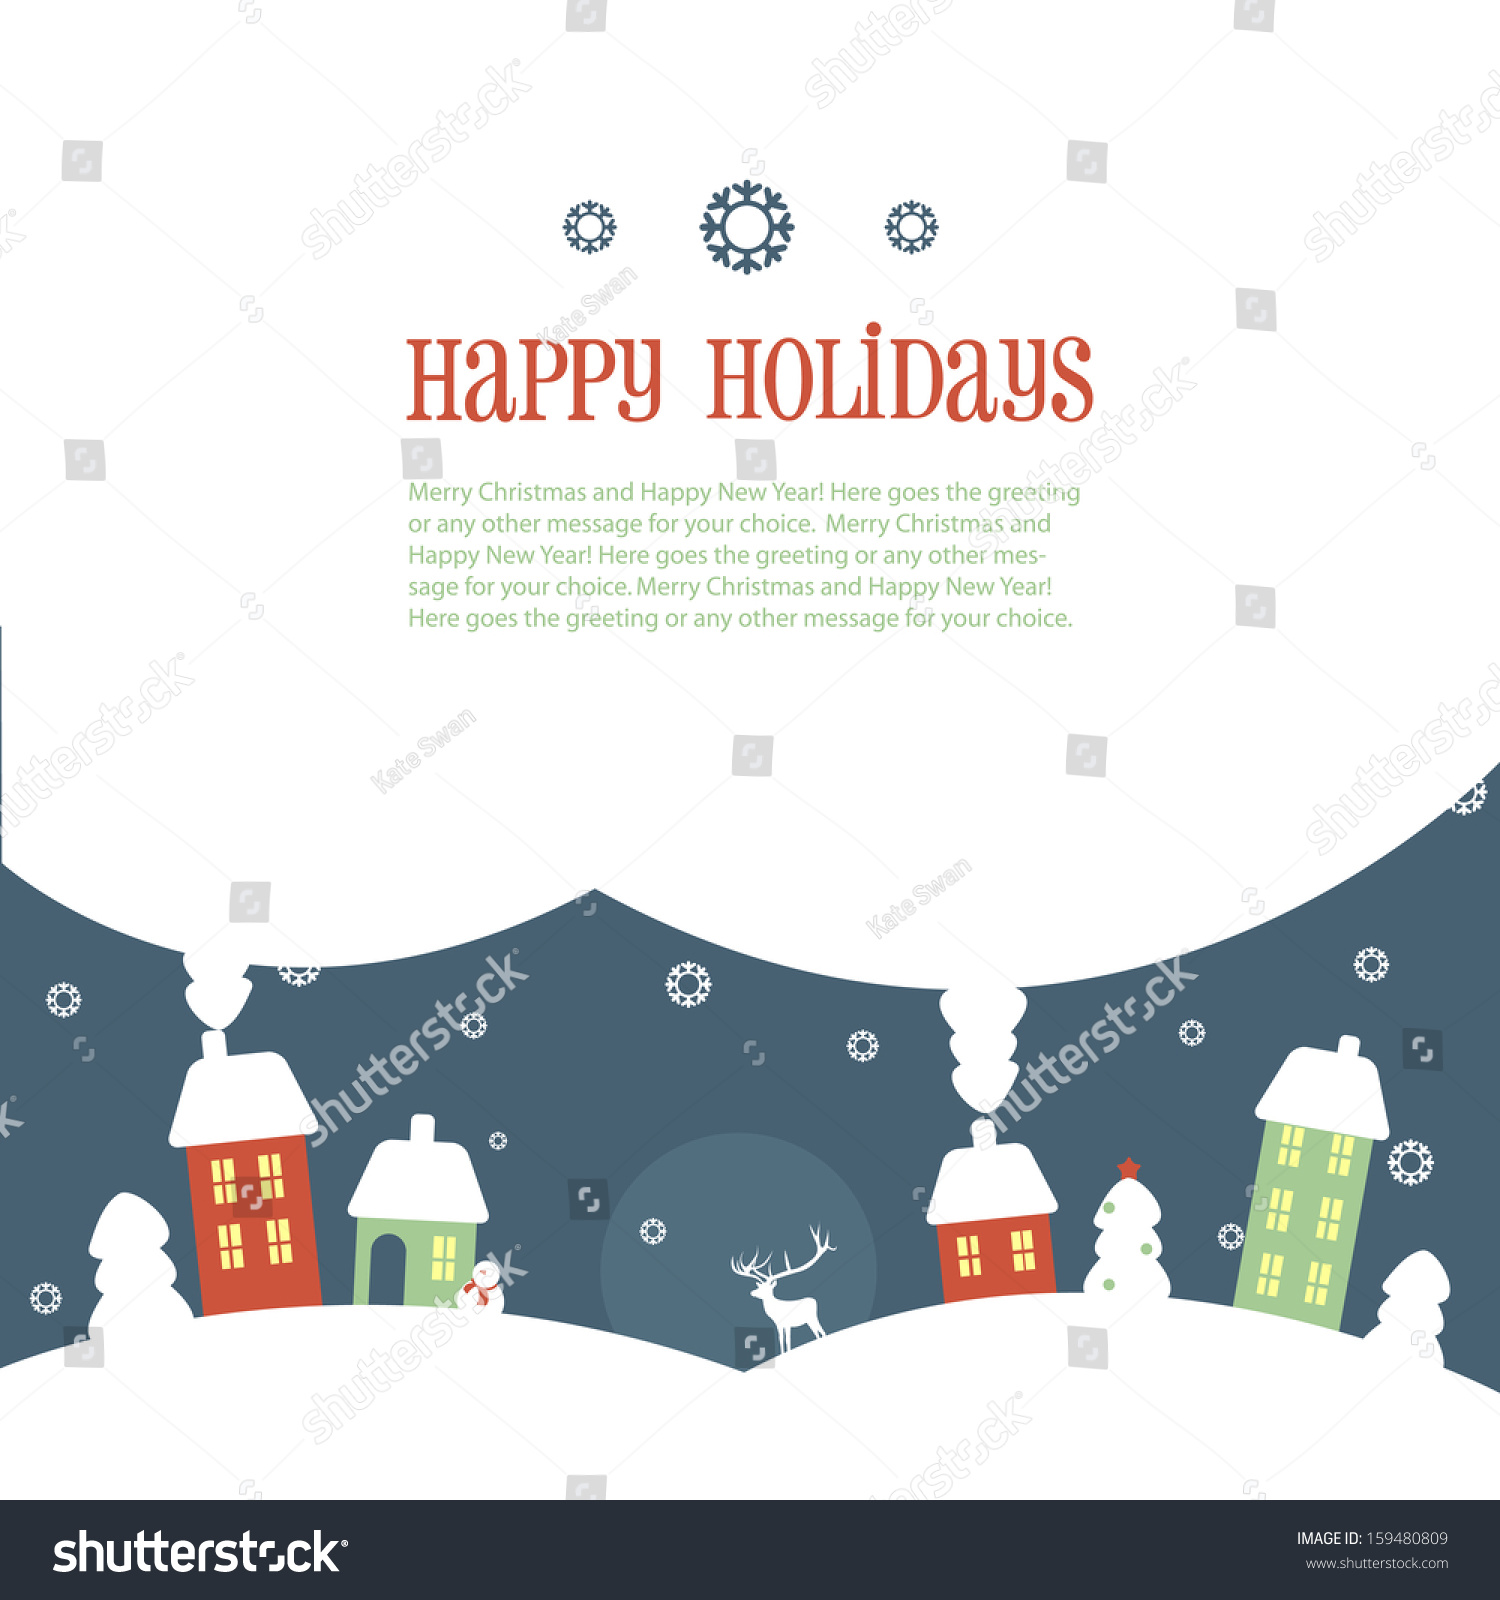 Happy holidays greeting banner stock vector 159480809 shutterstock happy holidays greeting banner kristyandbryce Gallery